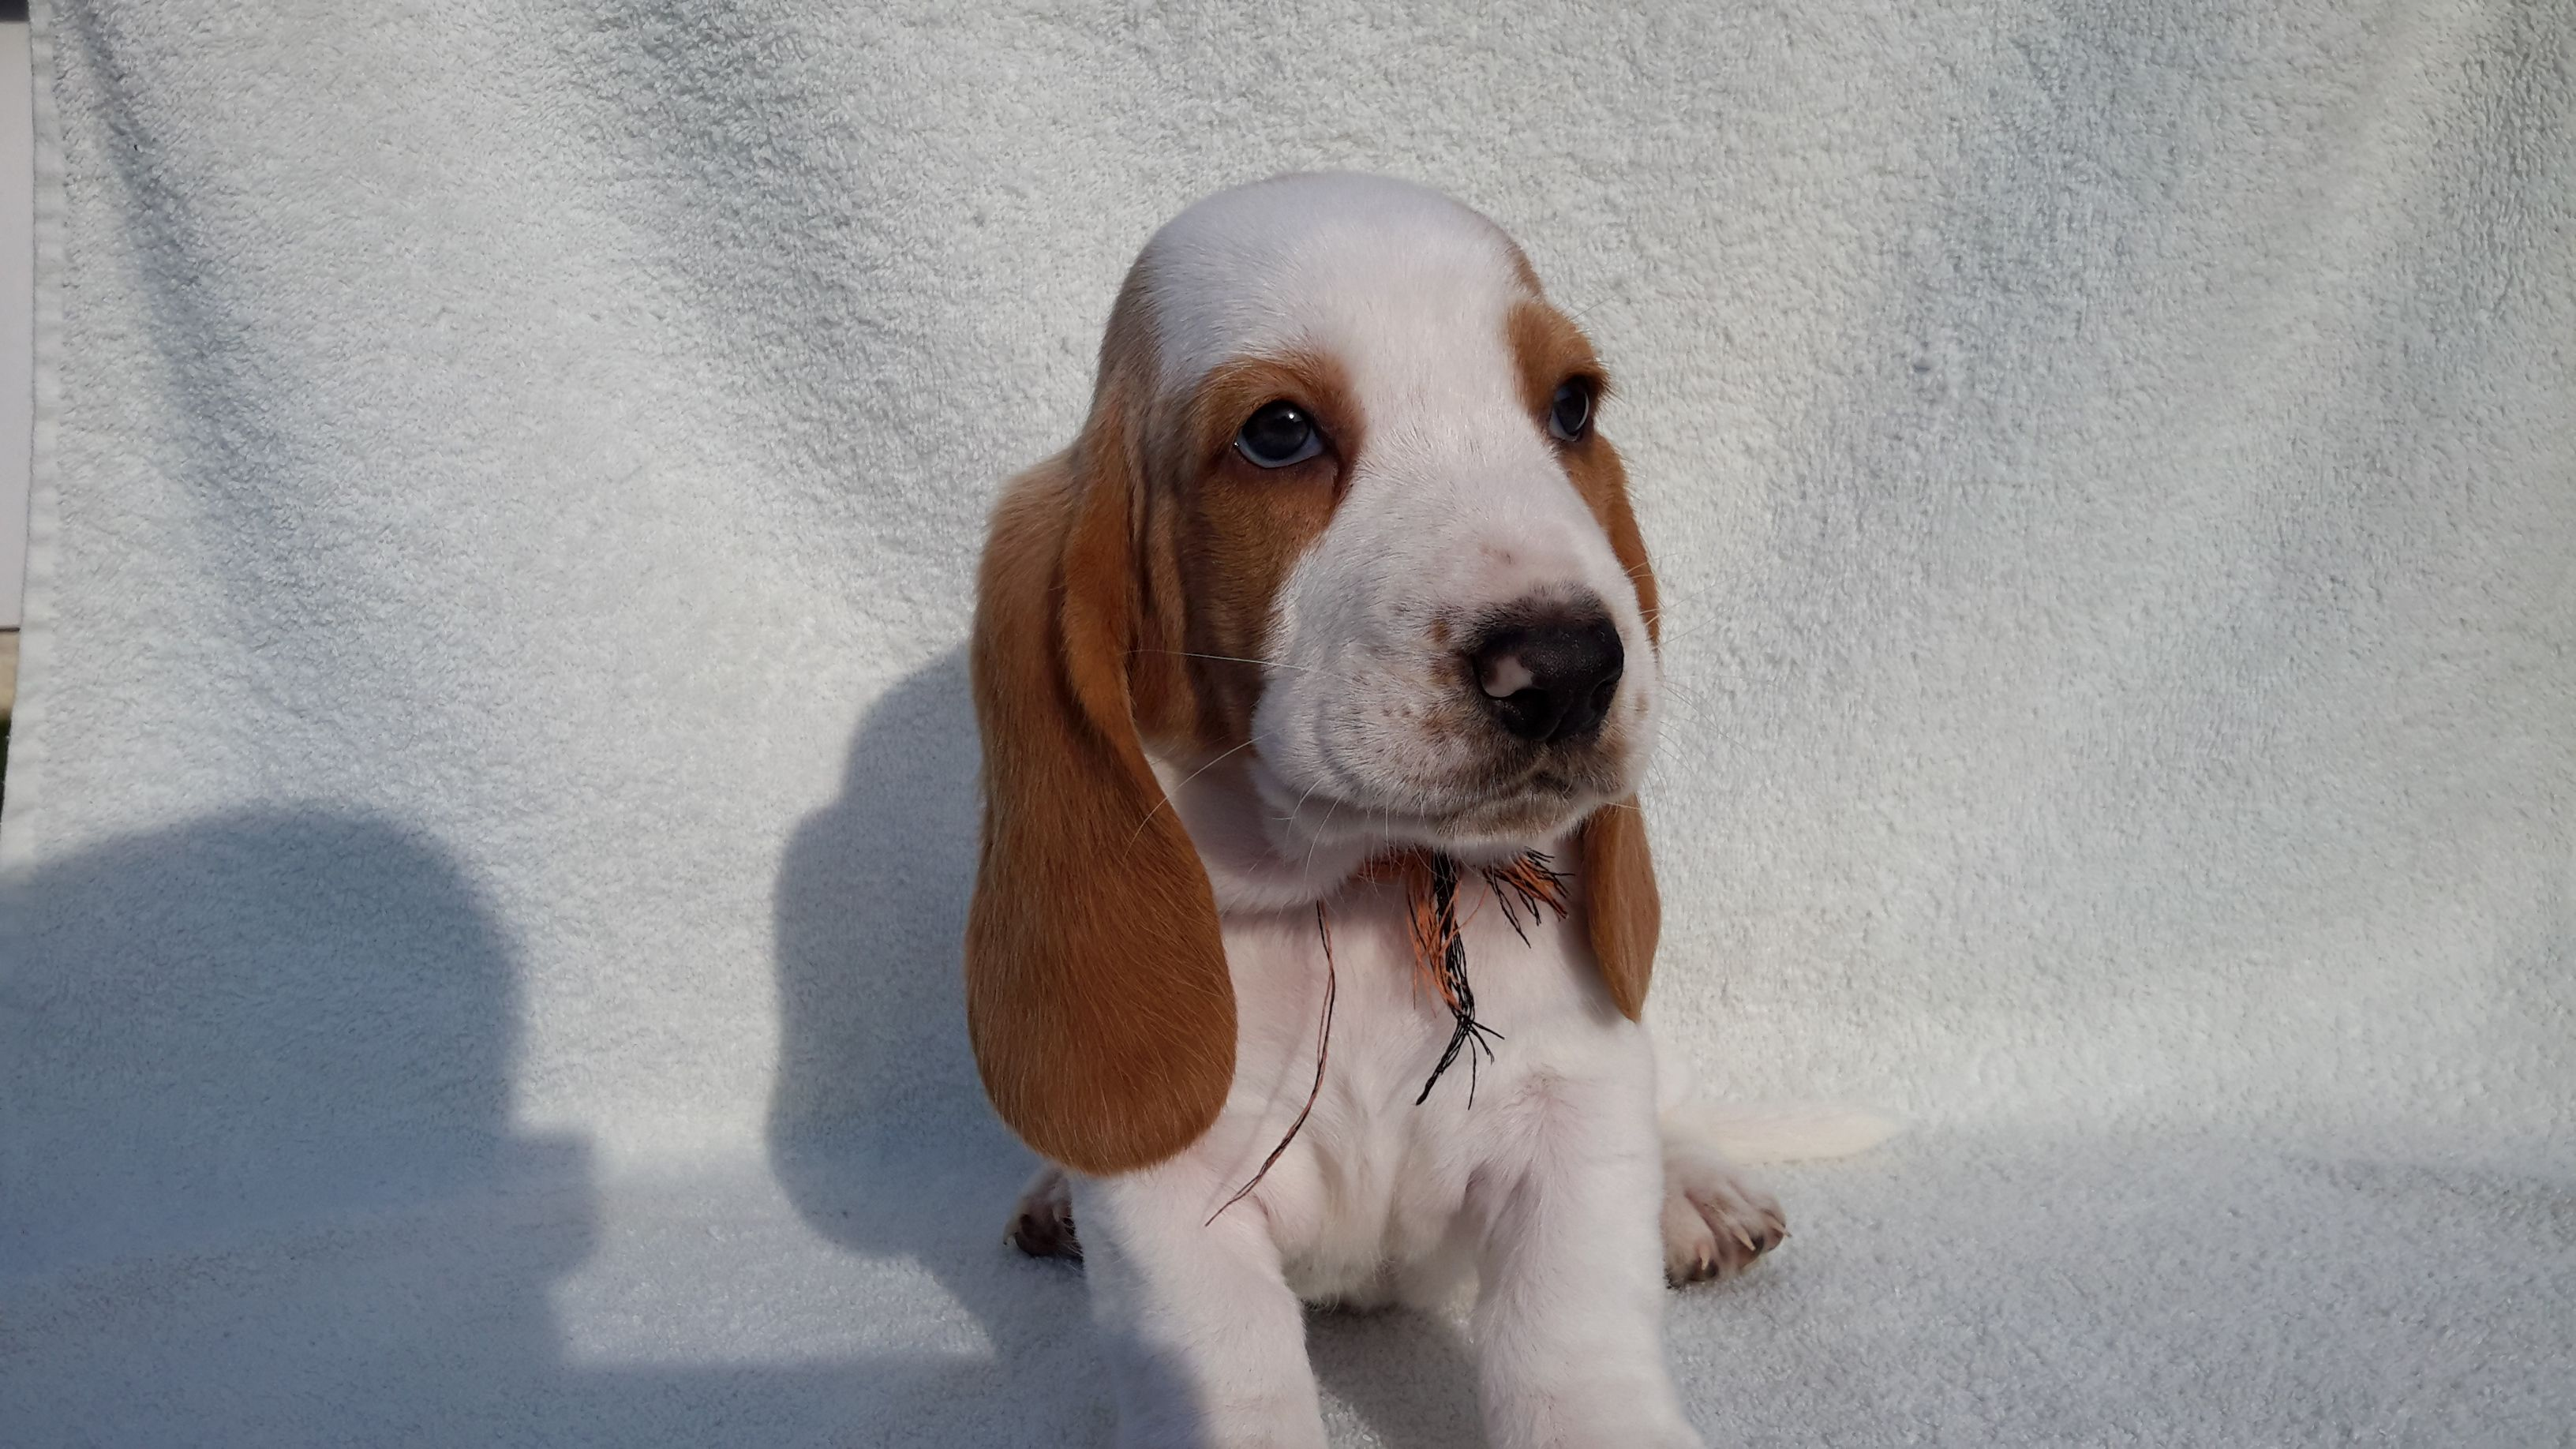 20160904 170304 compressed SaSa ReSi Bassethoundkennel